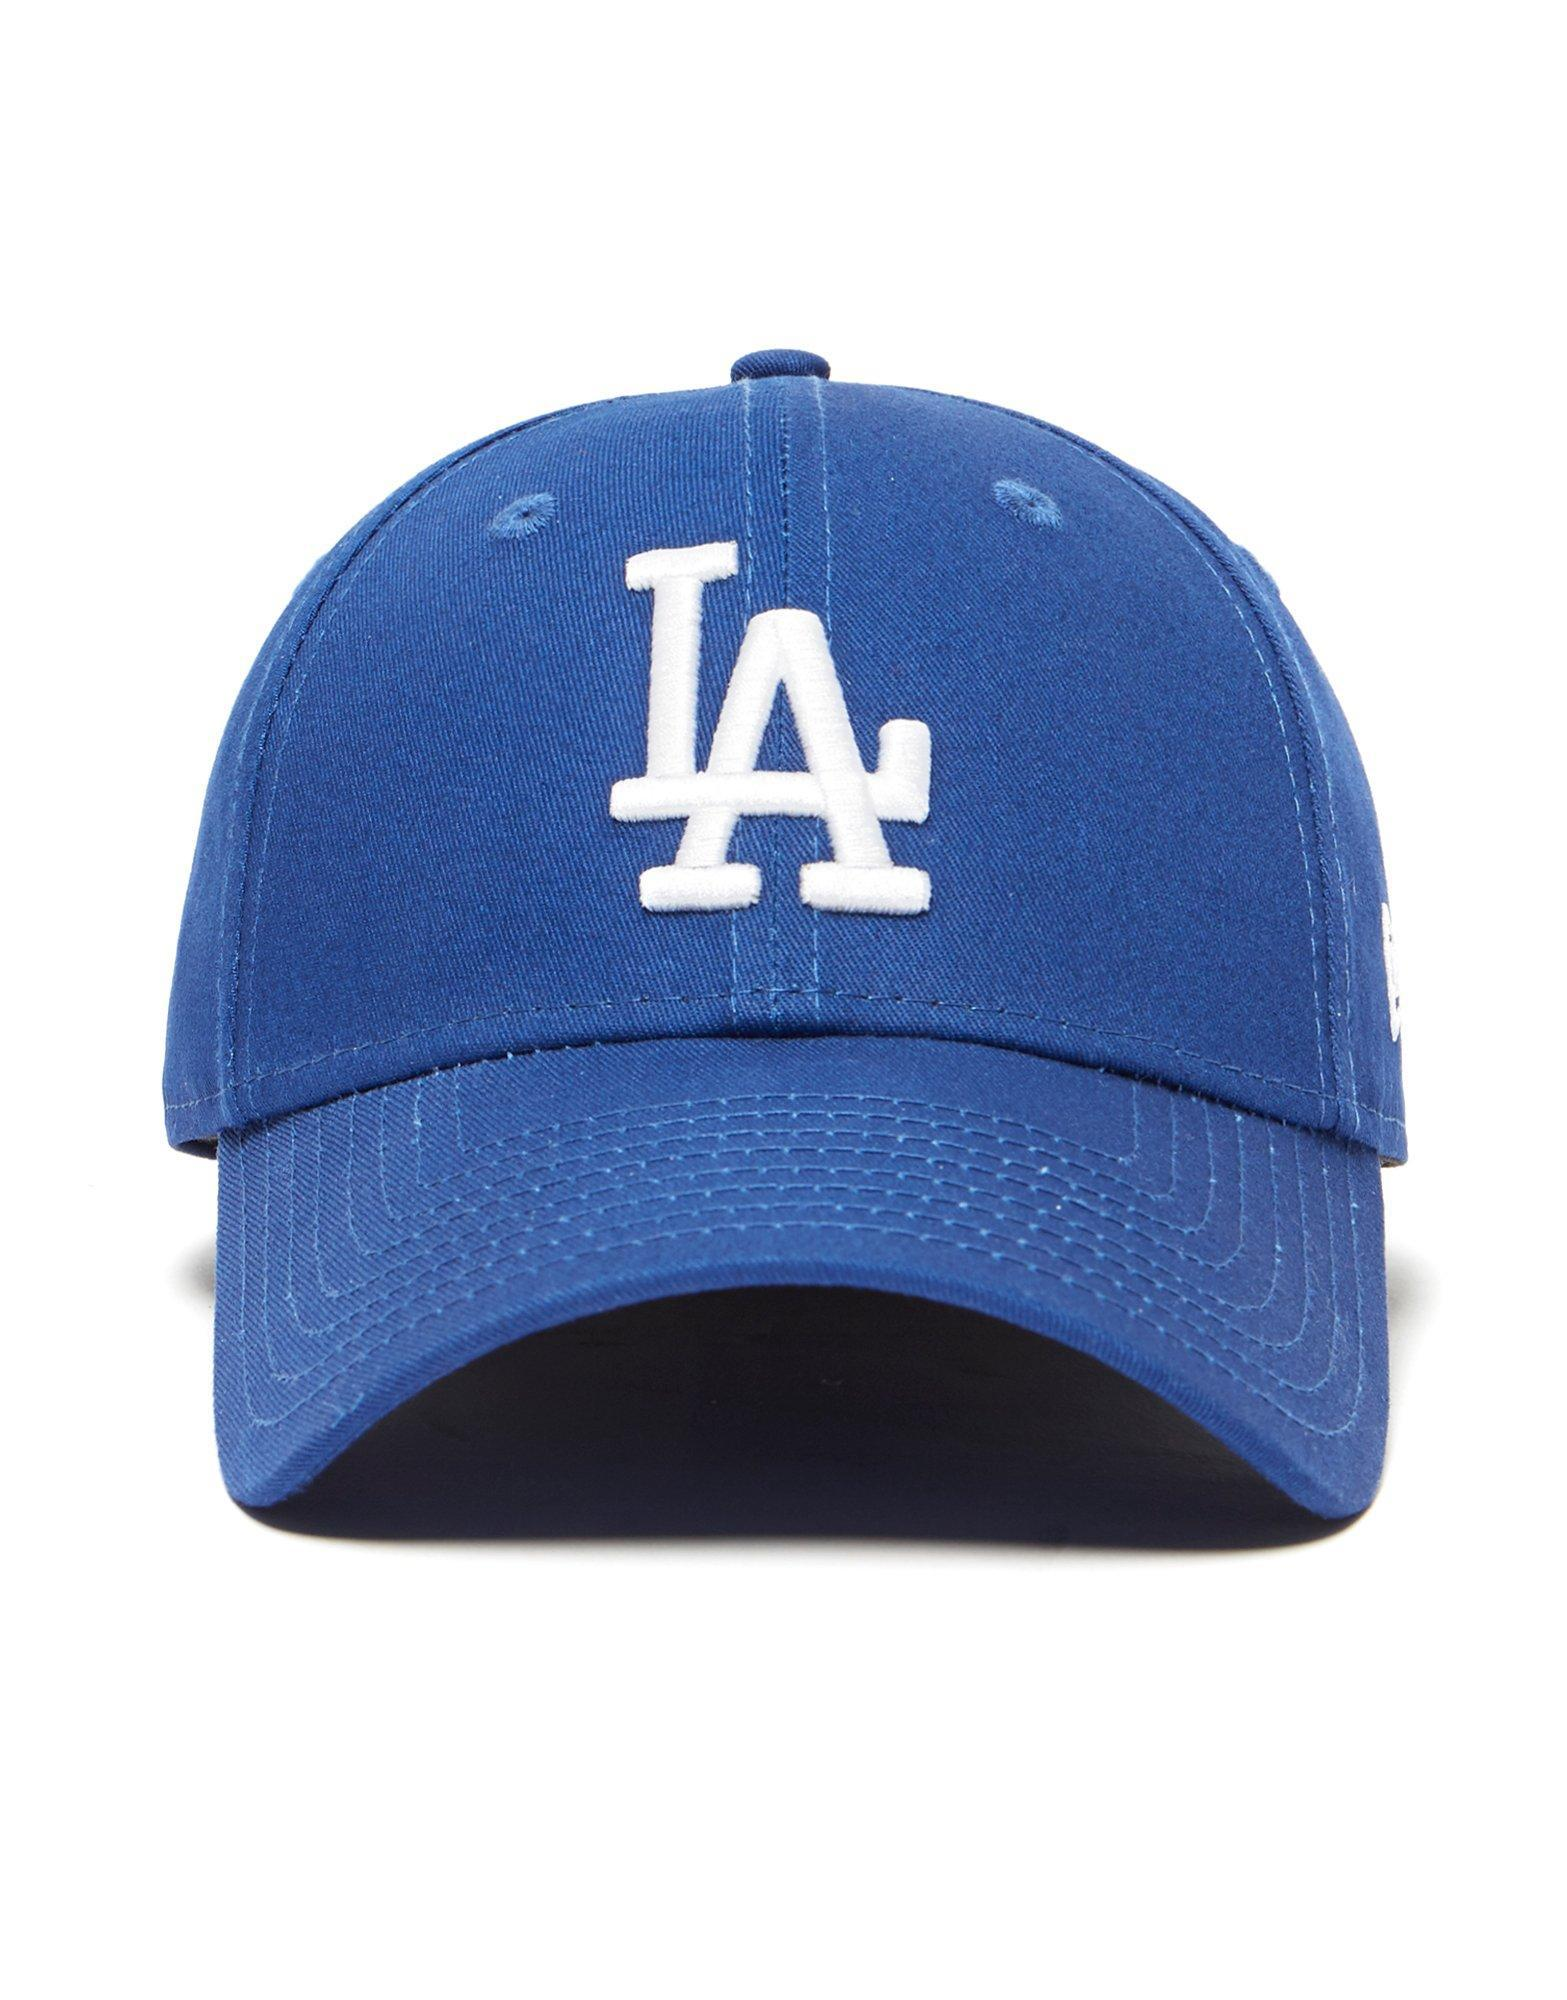 09a712d2599 Lyst - Ktz Mlb Los Angeles Dodgers 9forty Strapback Cap in Blue